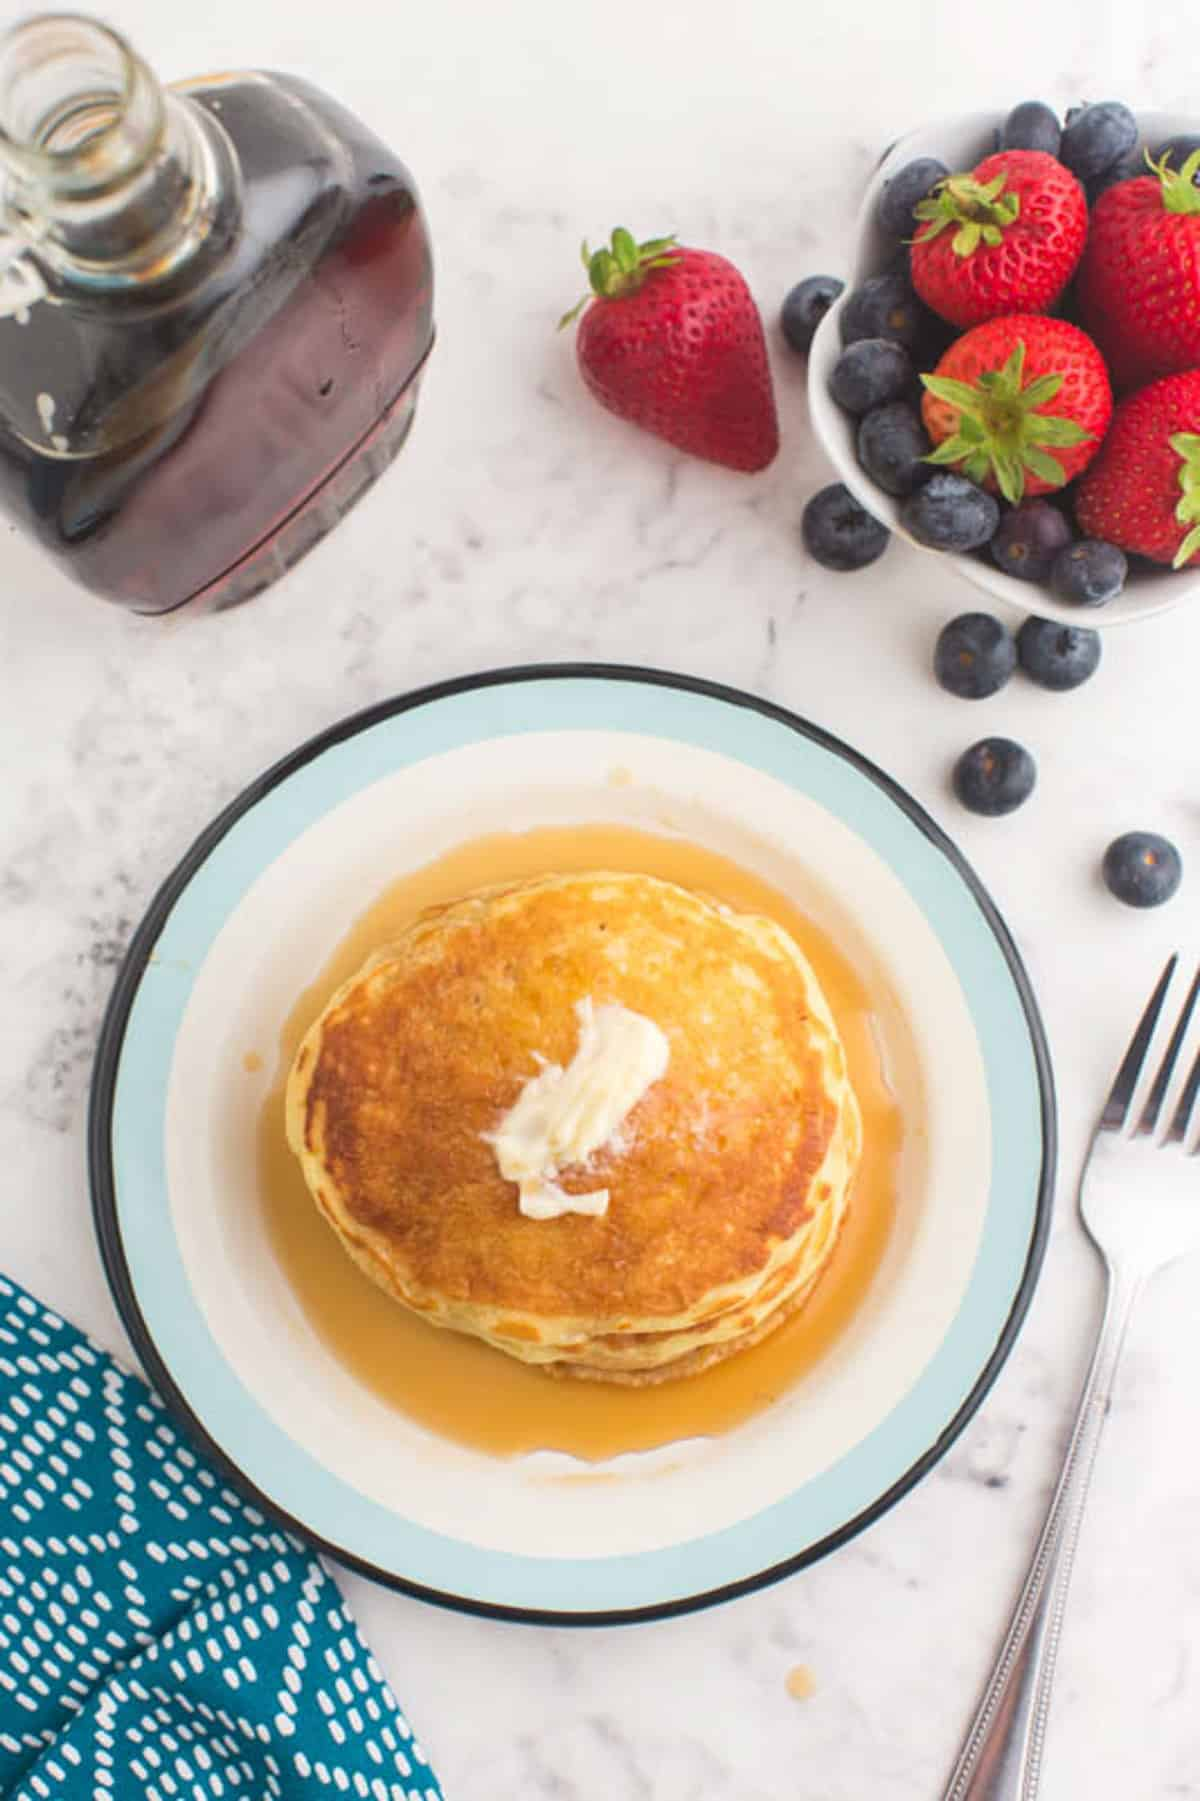 Overhead view of buttermilk pancakes with butter and syrup on a plate.